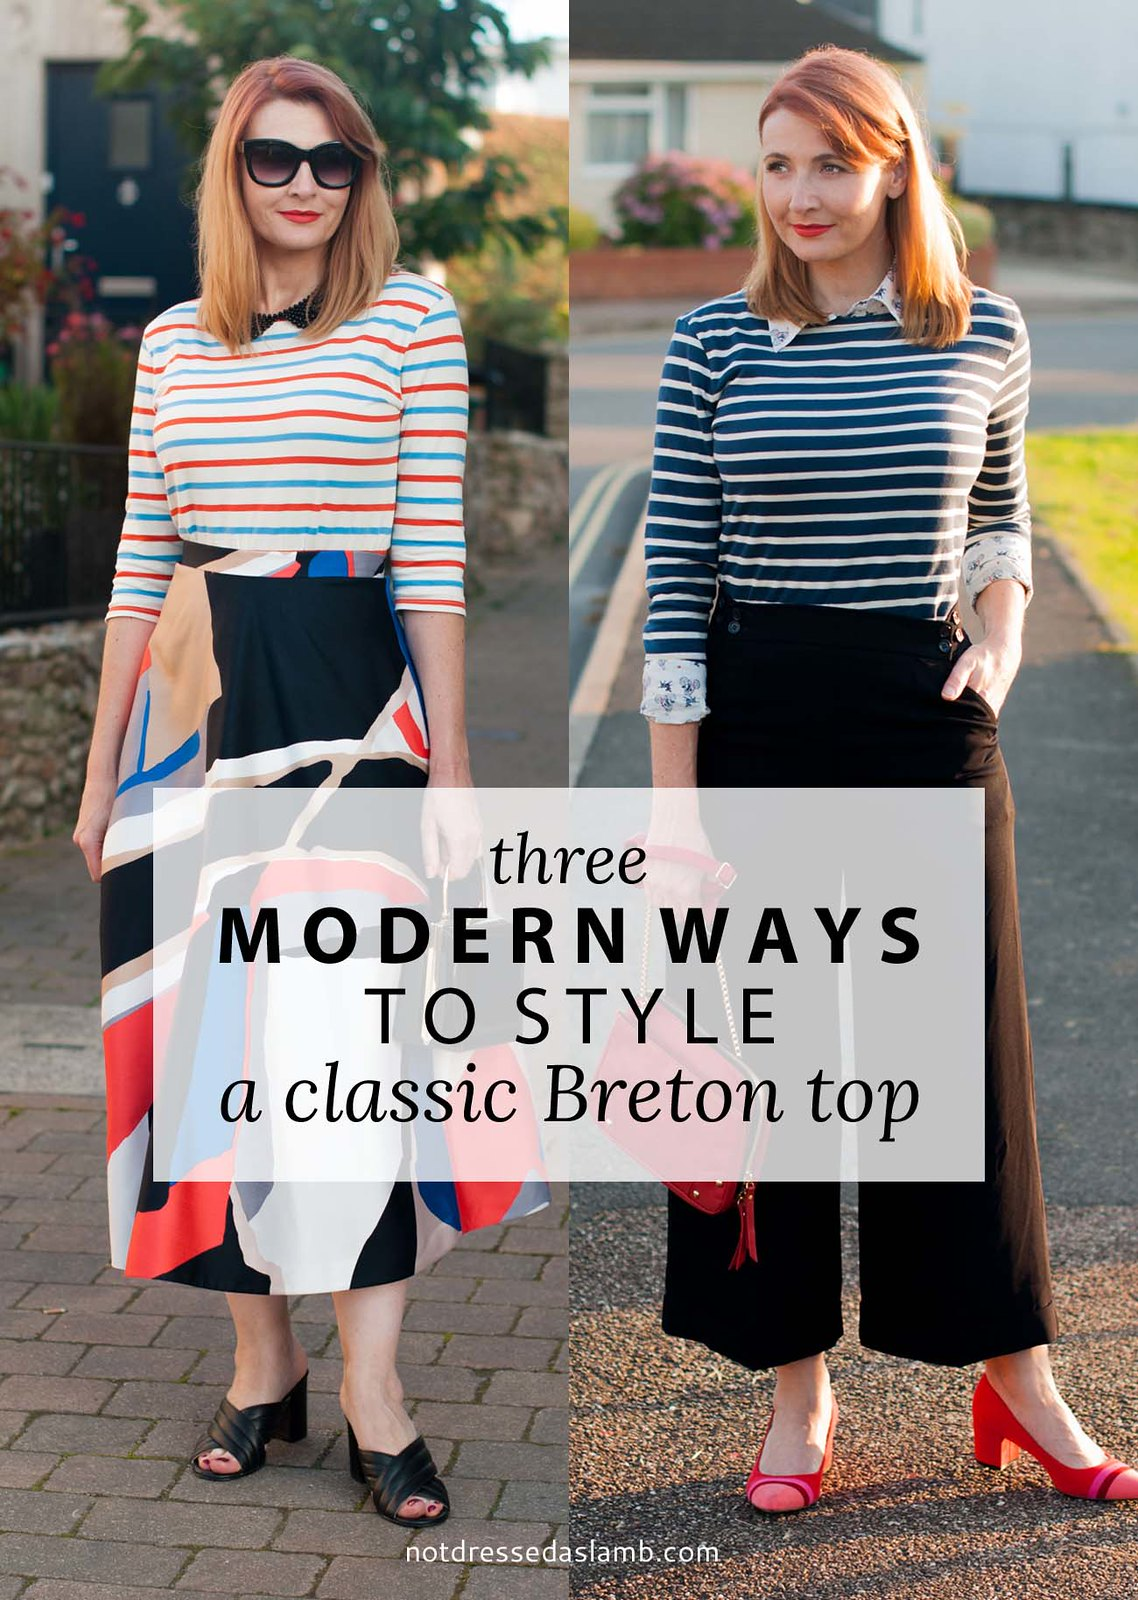 3 creative ways to style a Breton stripe top: Office chic/workwear, casual weekend wear and date night outfit | Not Dressed As Lamb, over 40 style